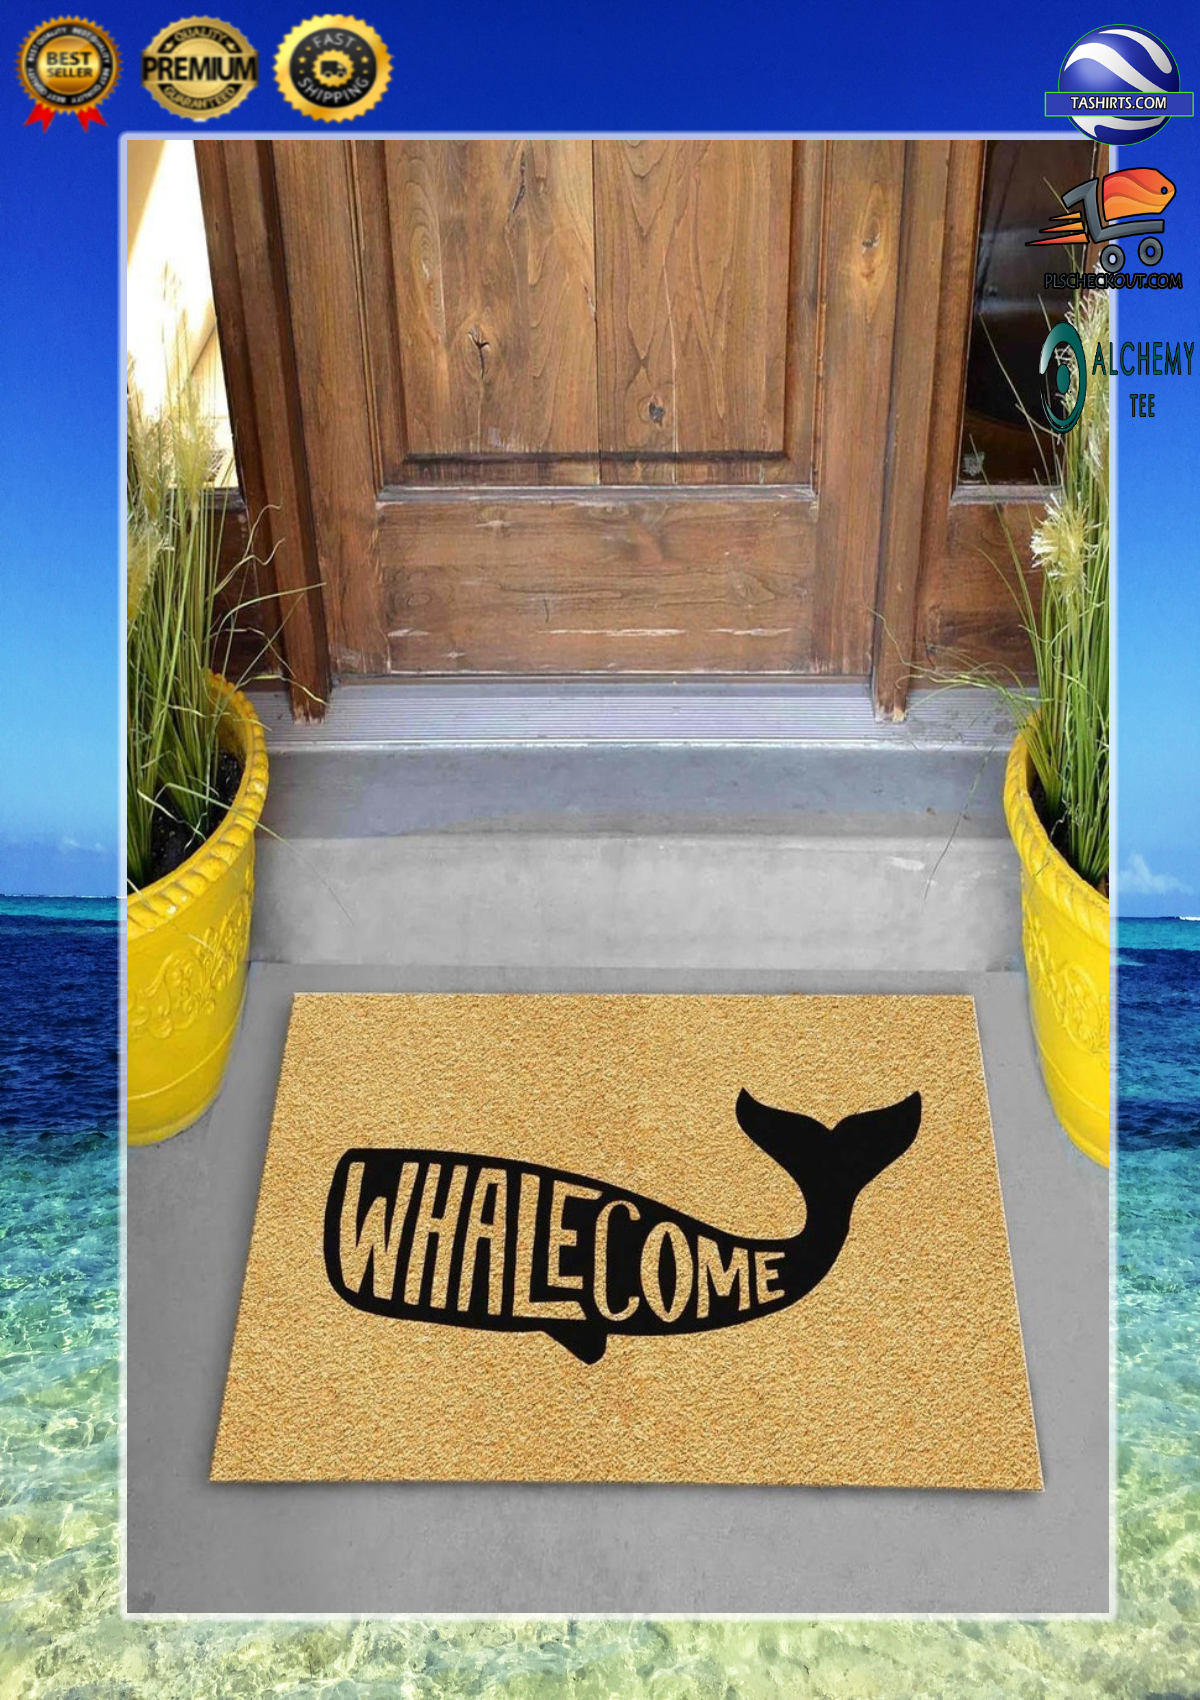 Whalecome whale doormat 1